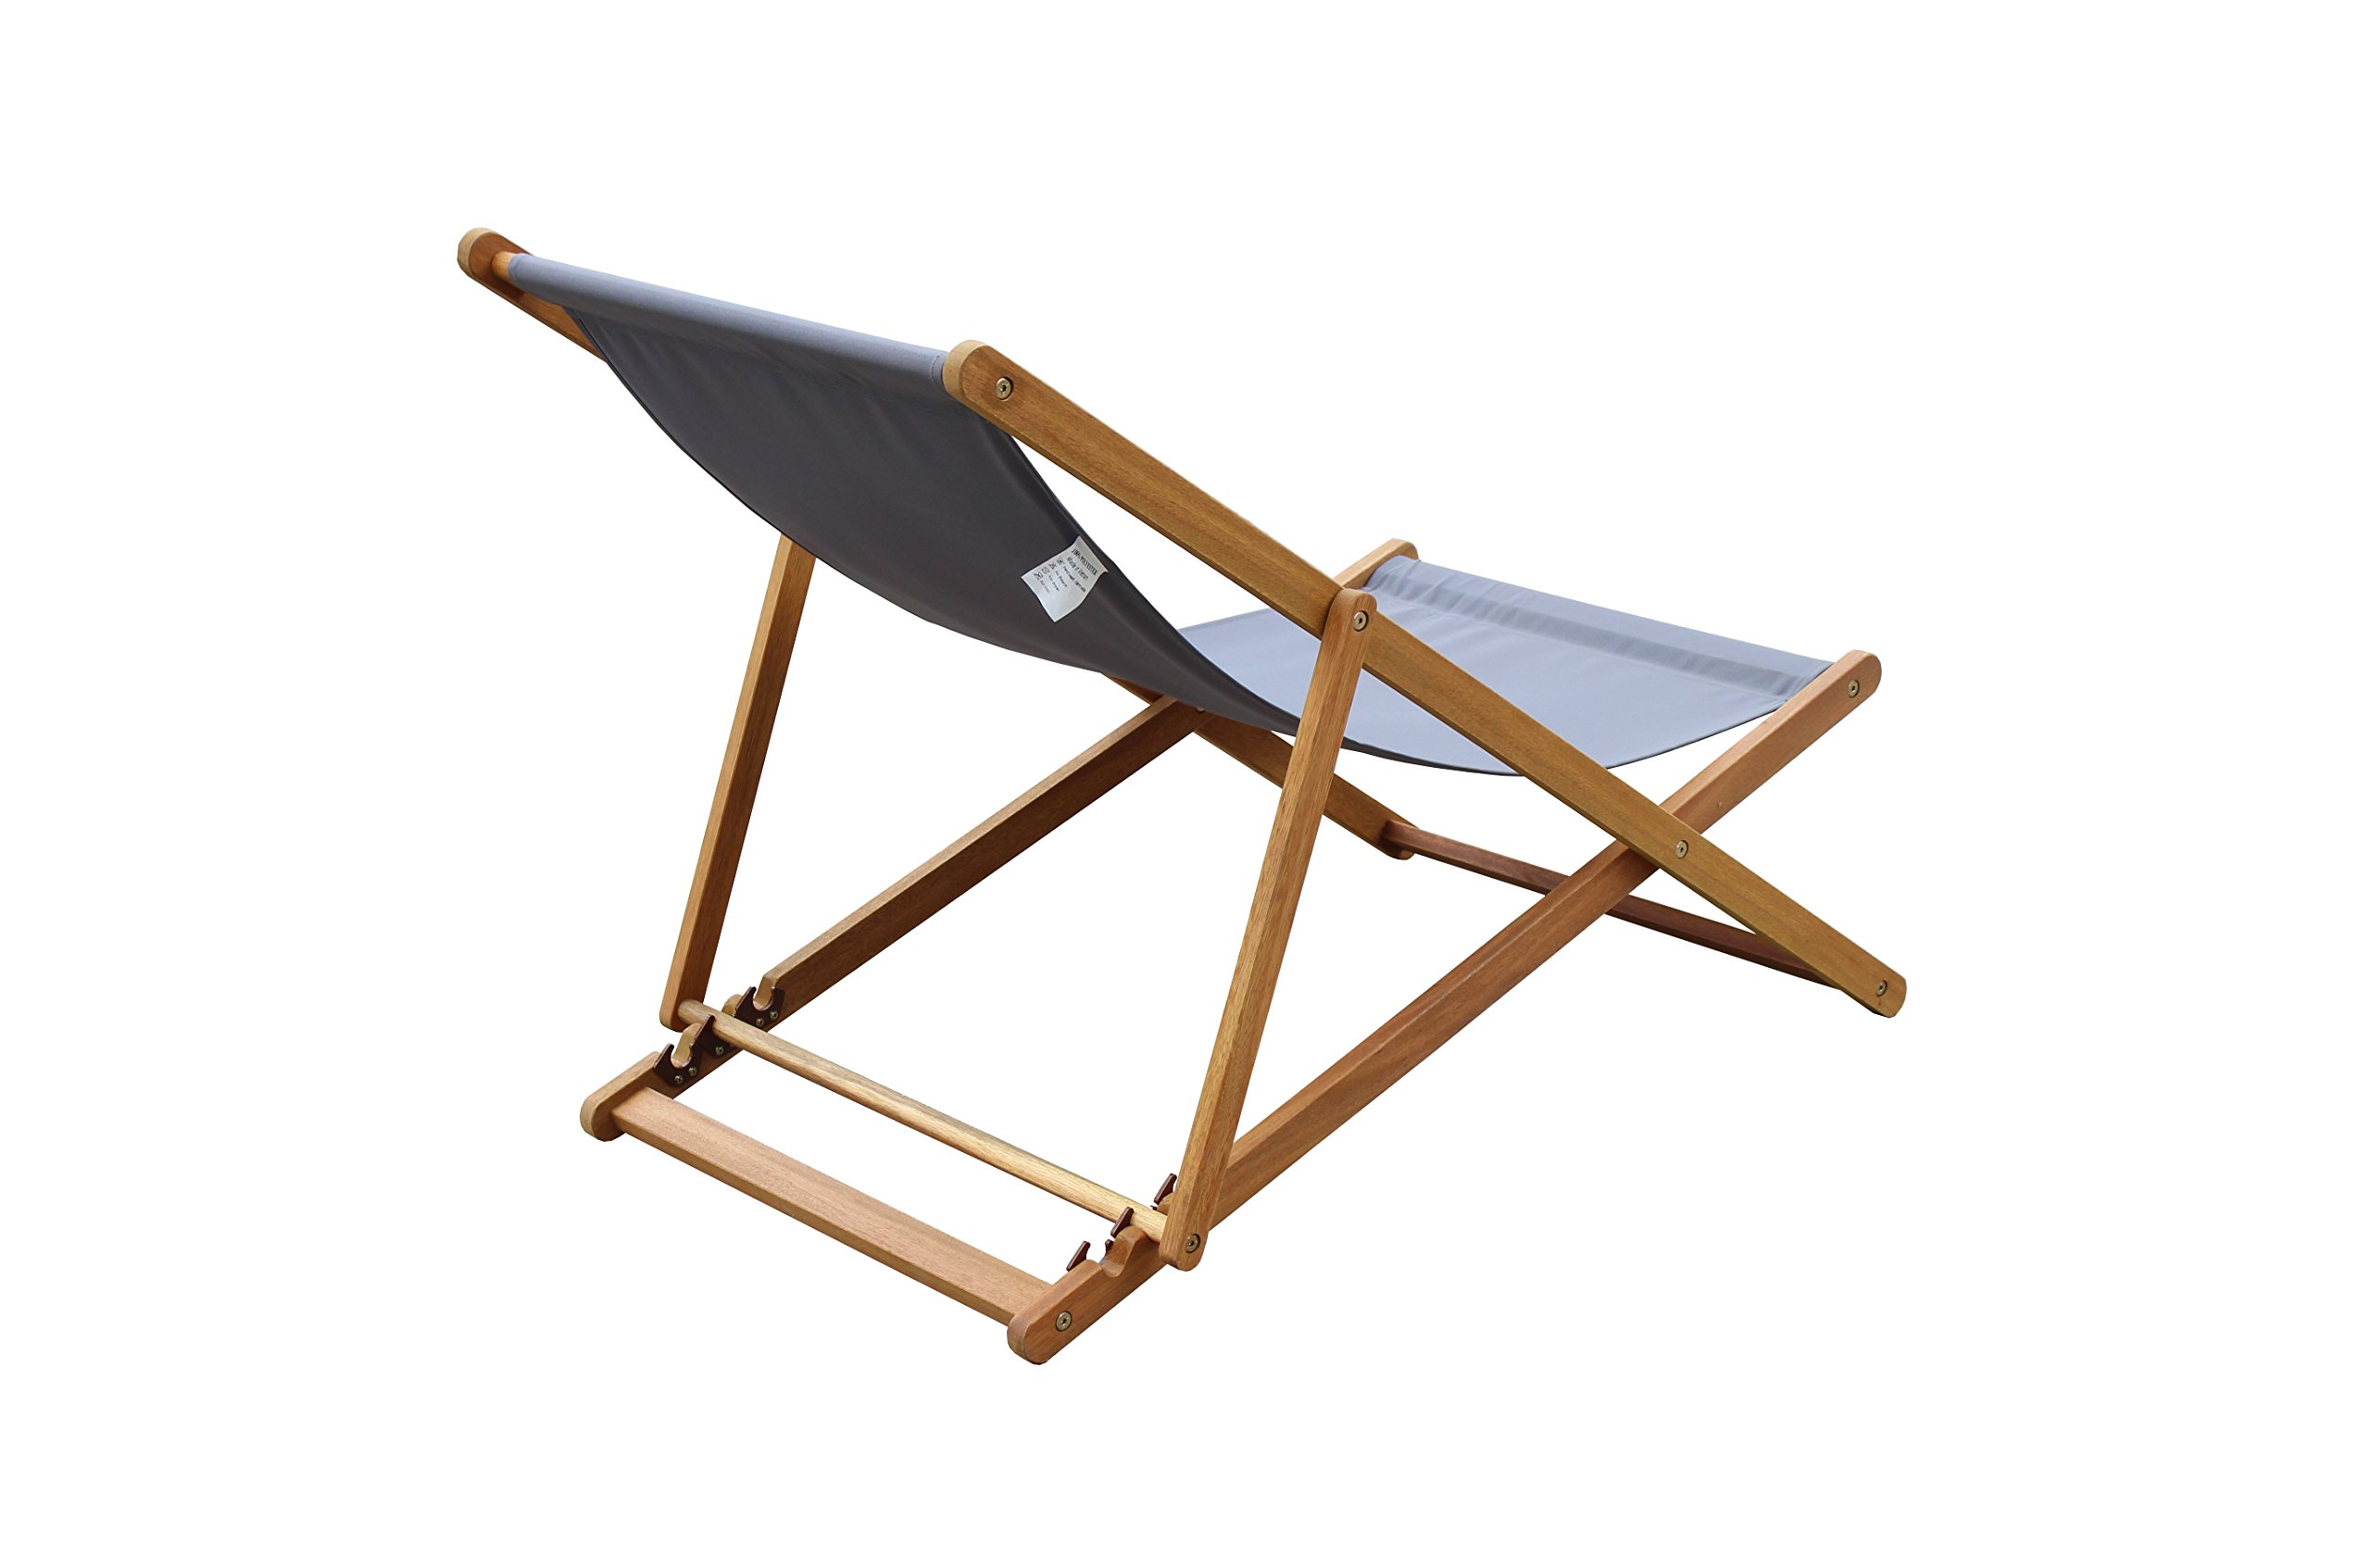 Amayo Home Solid Eucalyptus Wood Foldable Sling Chair Garden Seating, Hold 250lbs, Grey Canvas, Adjustable with 3 Reclining Positions. No Assembly. Comfortably Relax Chair in Garden Porch Pool by by Amayo Home (Image #5)